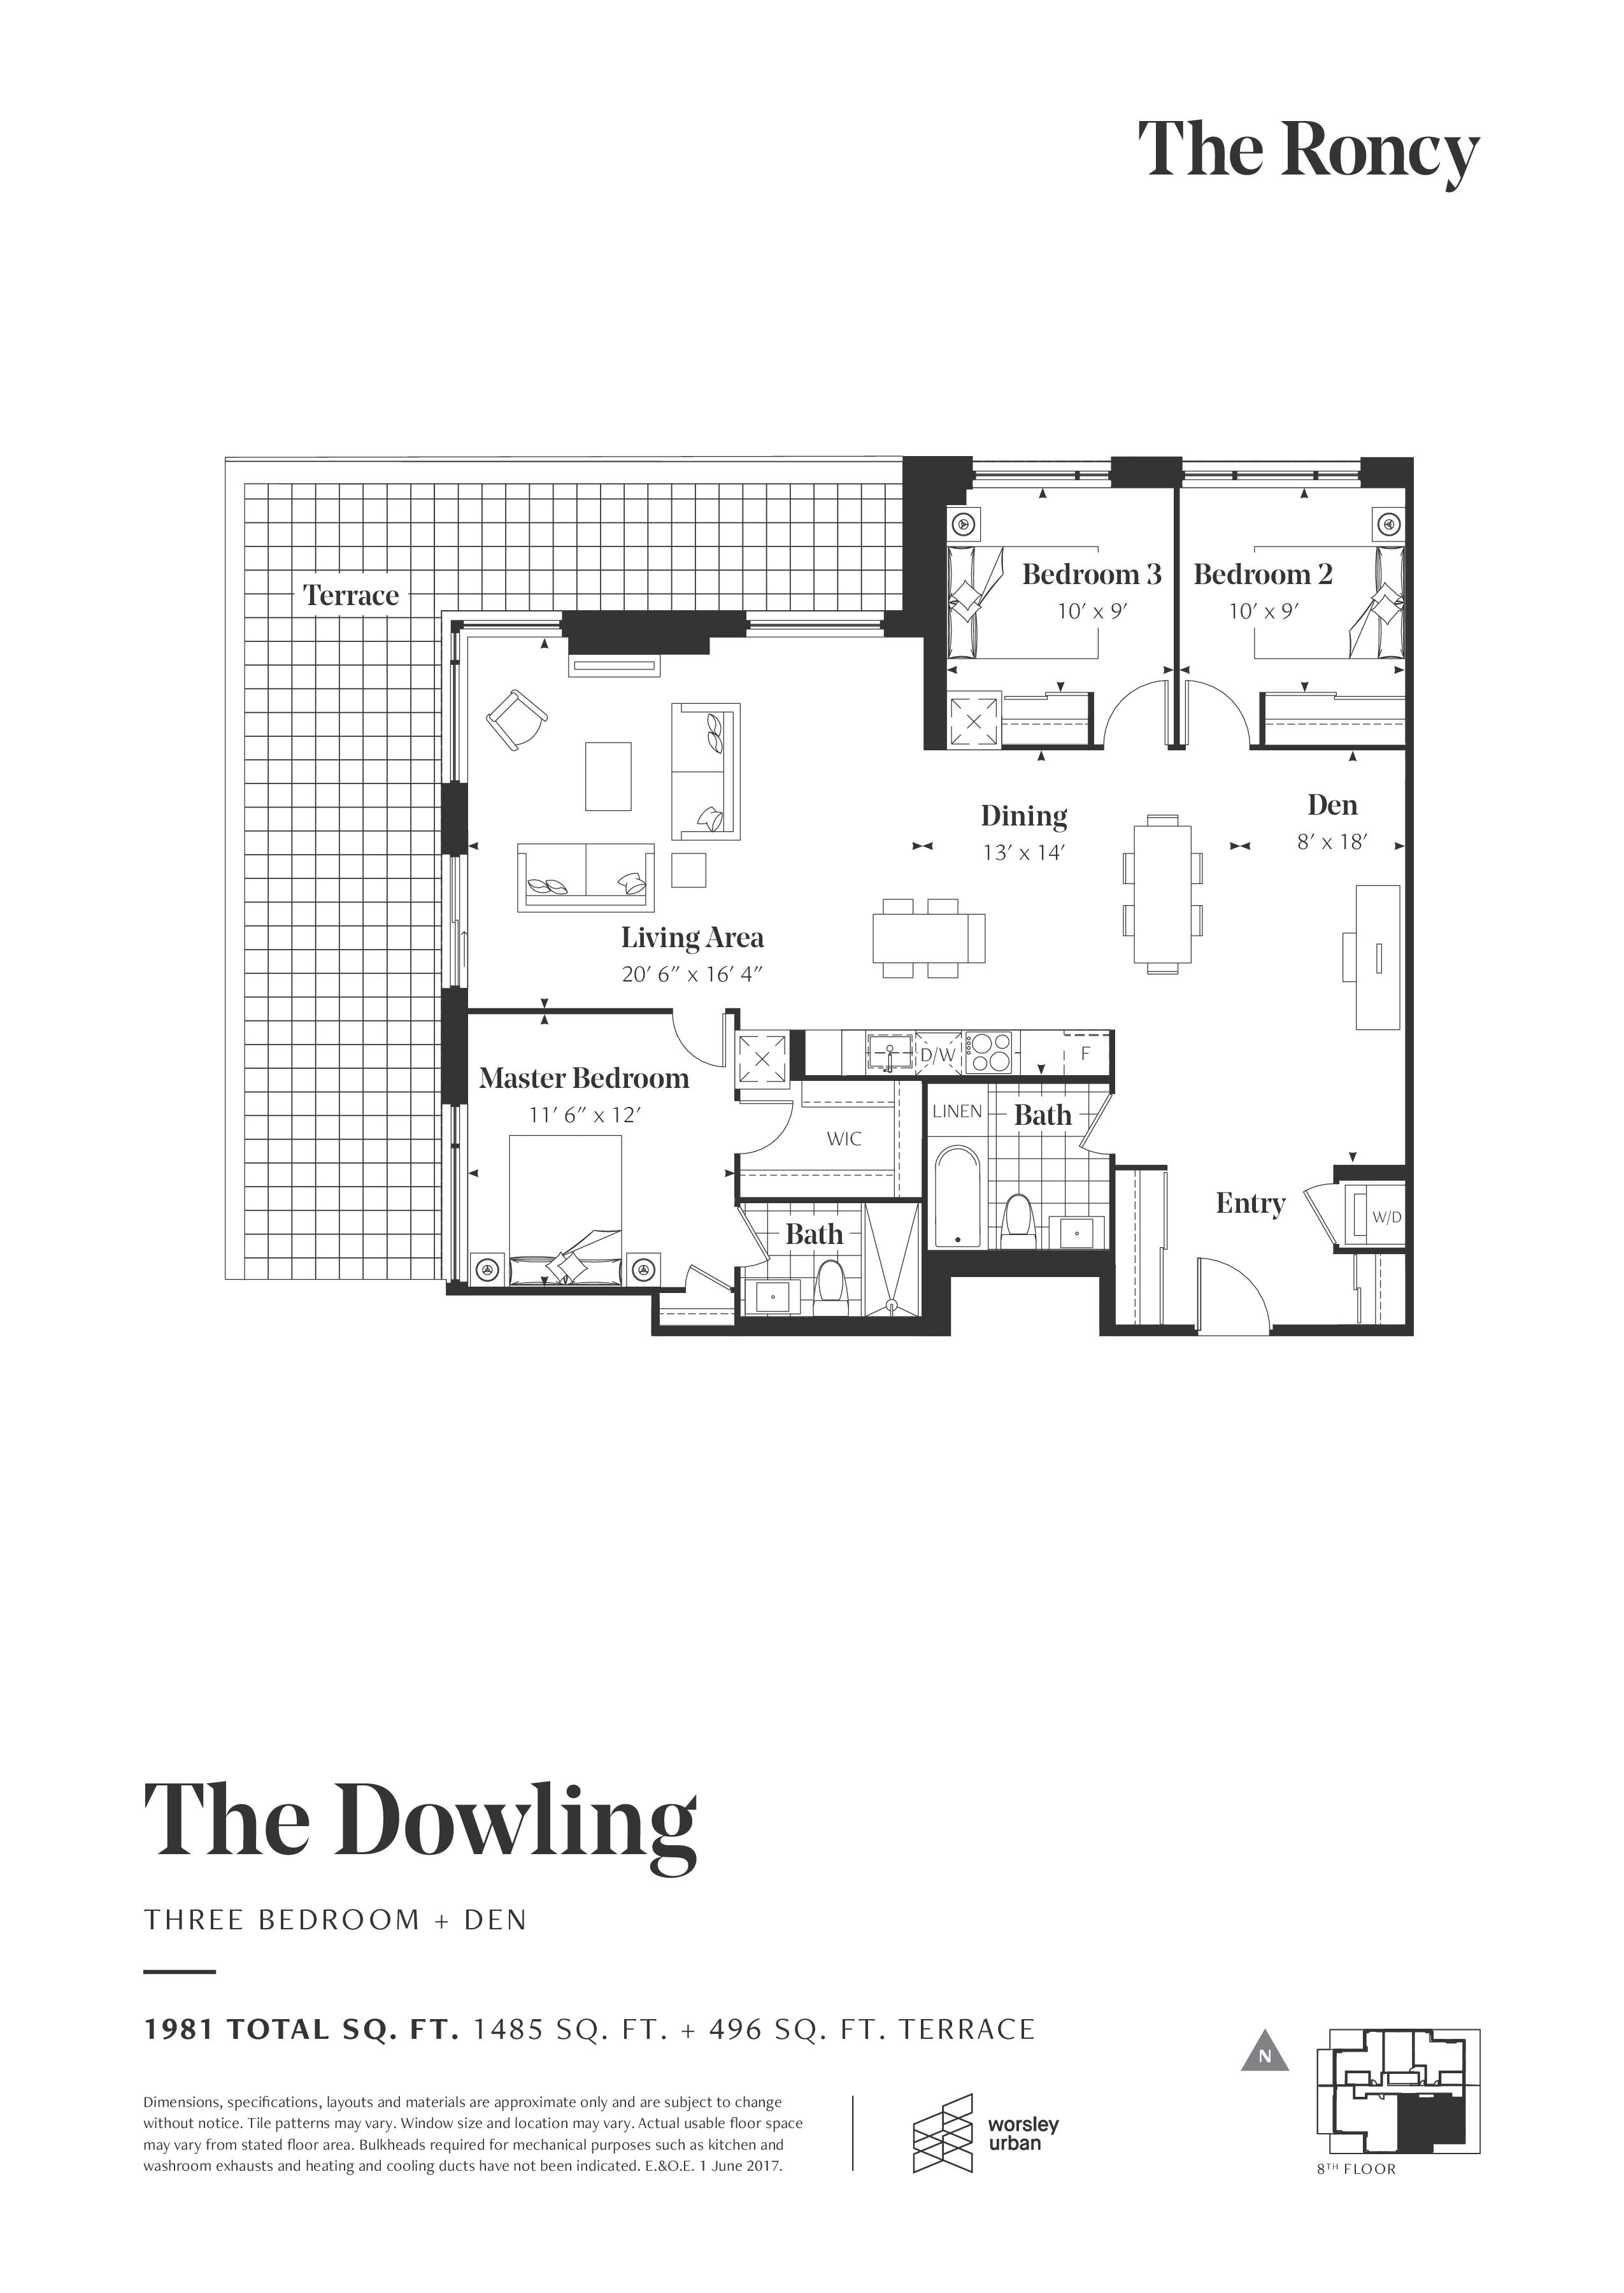 The Dowling